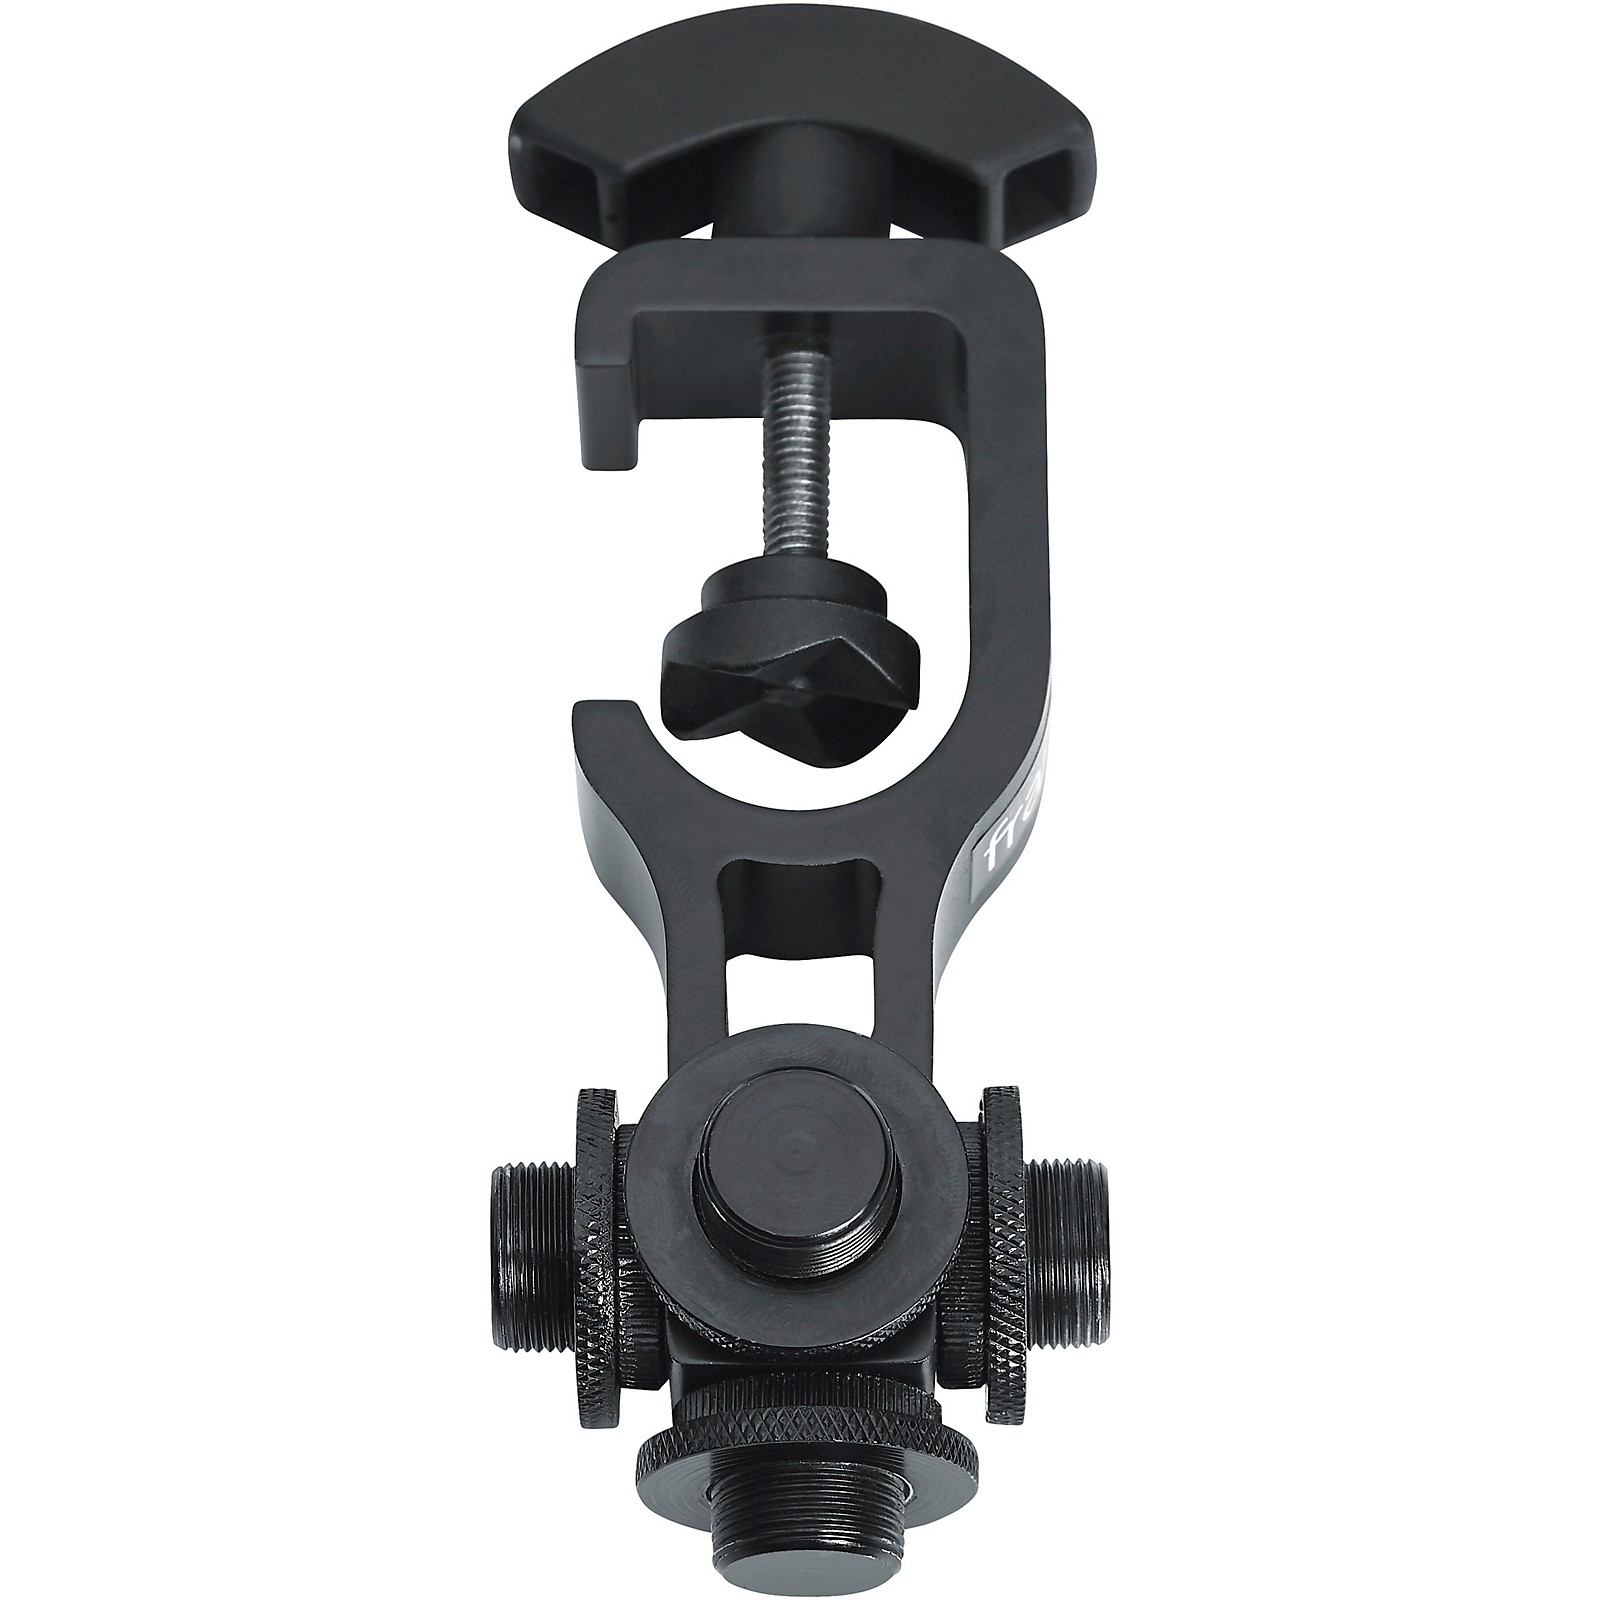 Gator GFW-MIC-MULTIMOUNT Mount to Add up to 4 Accessories for Mic Stands